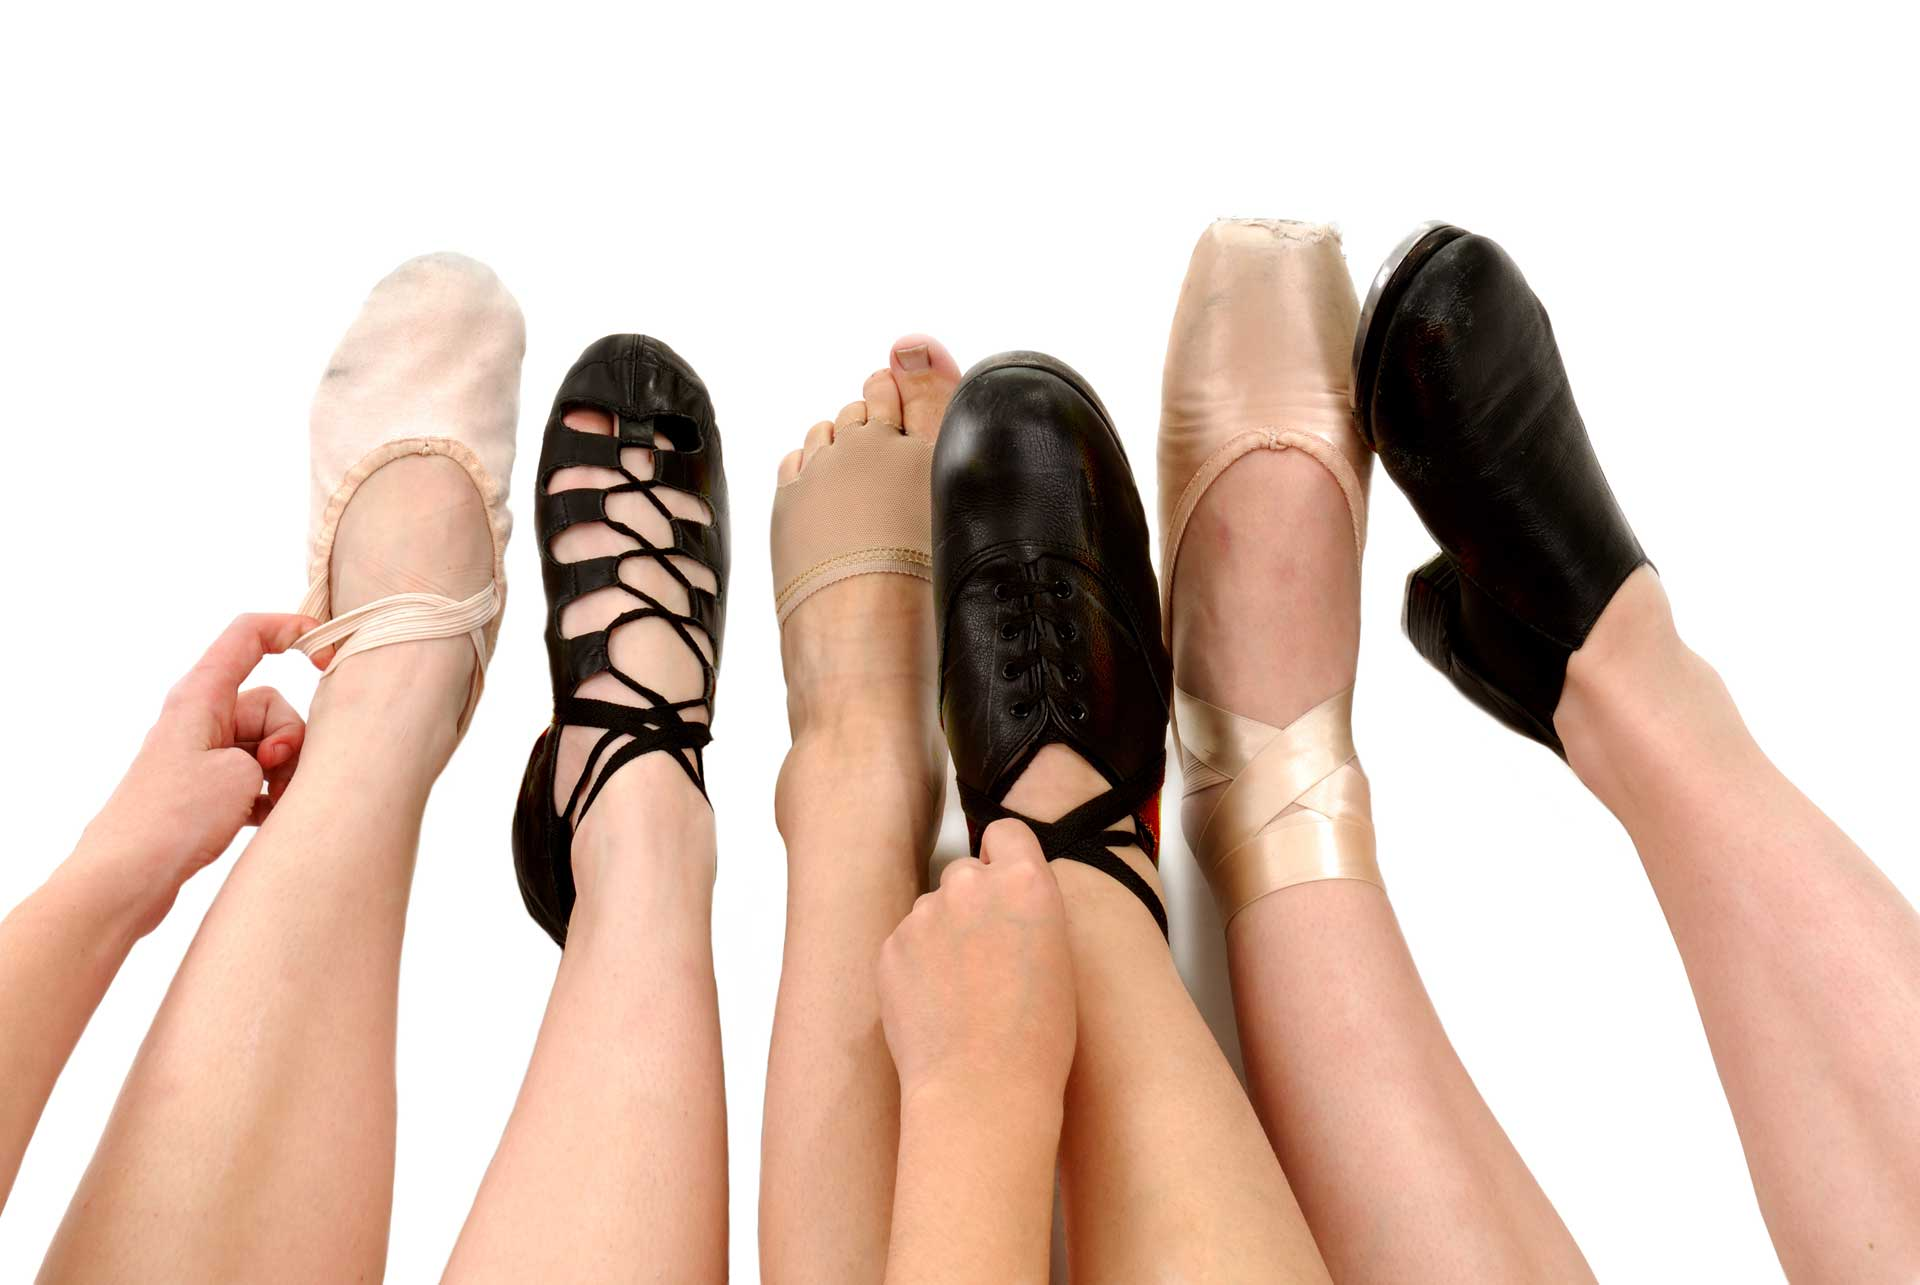 Image of variety of dancers feet and shoes - Podiatric sports medicine in Sterling VA